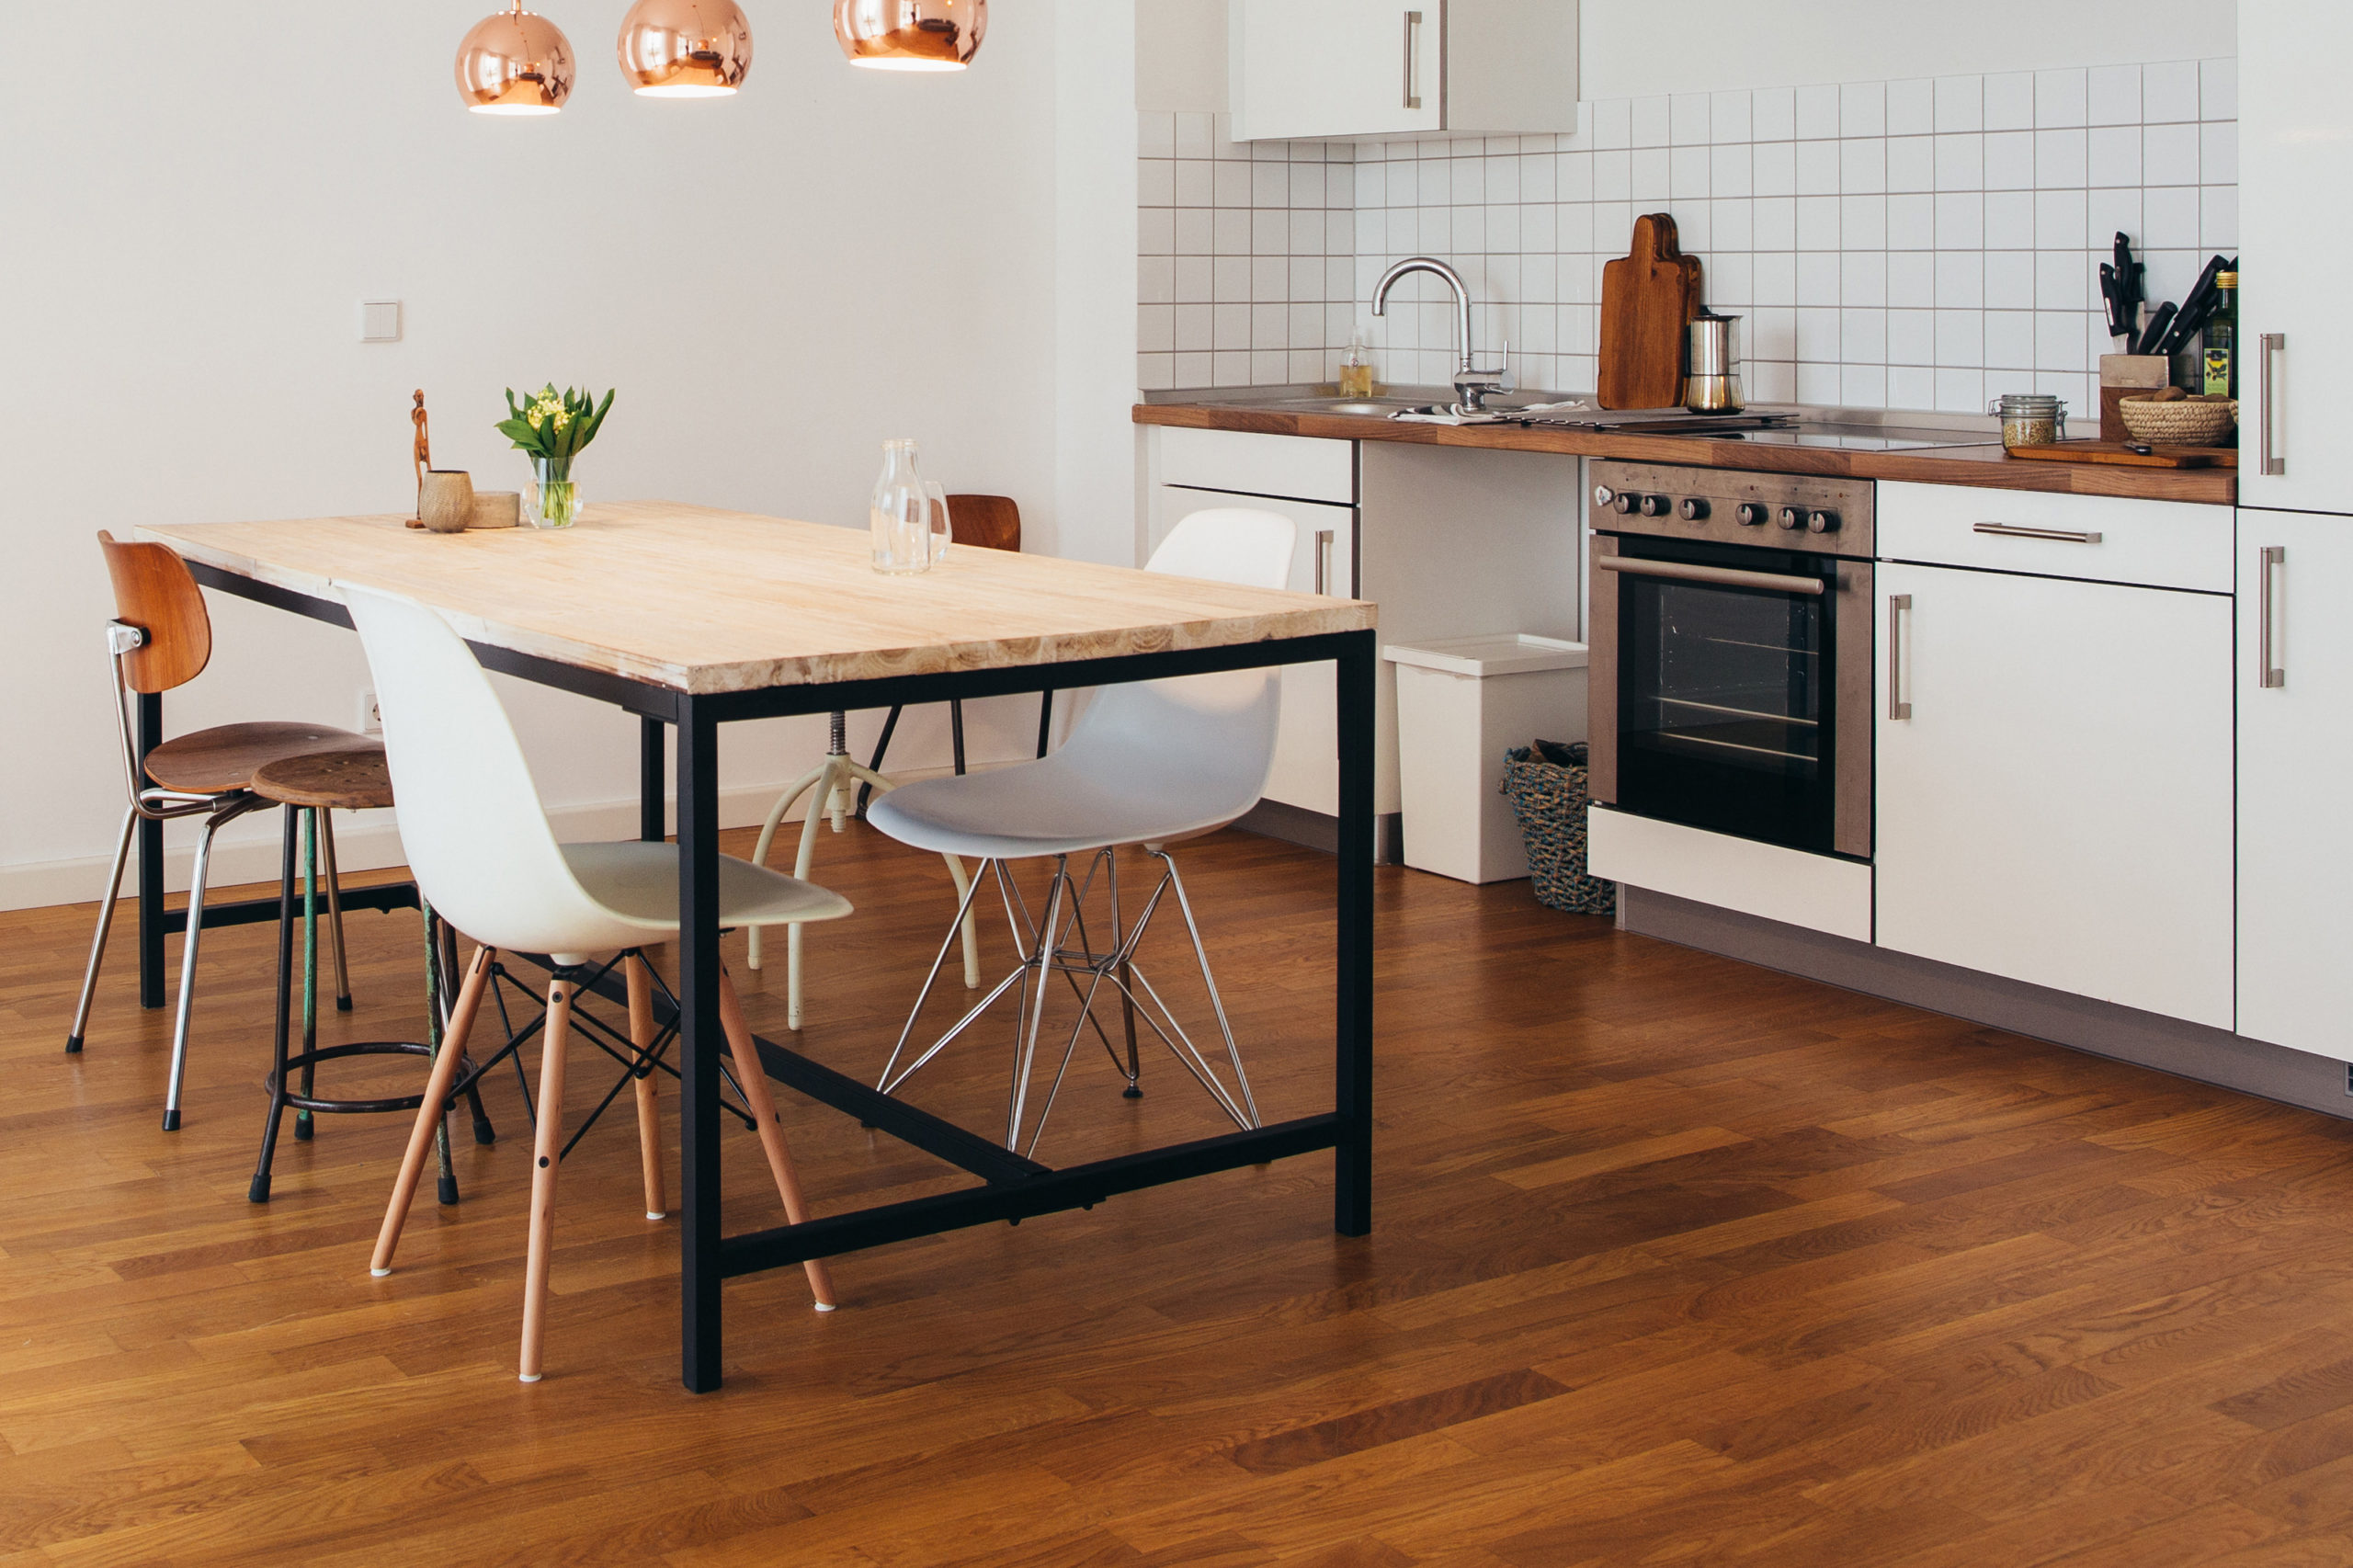 Marble Tiles Floor – Could They Be Costly